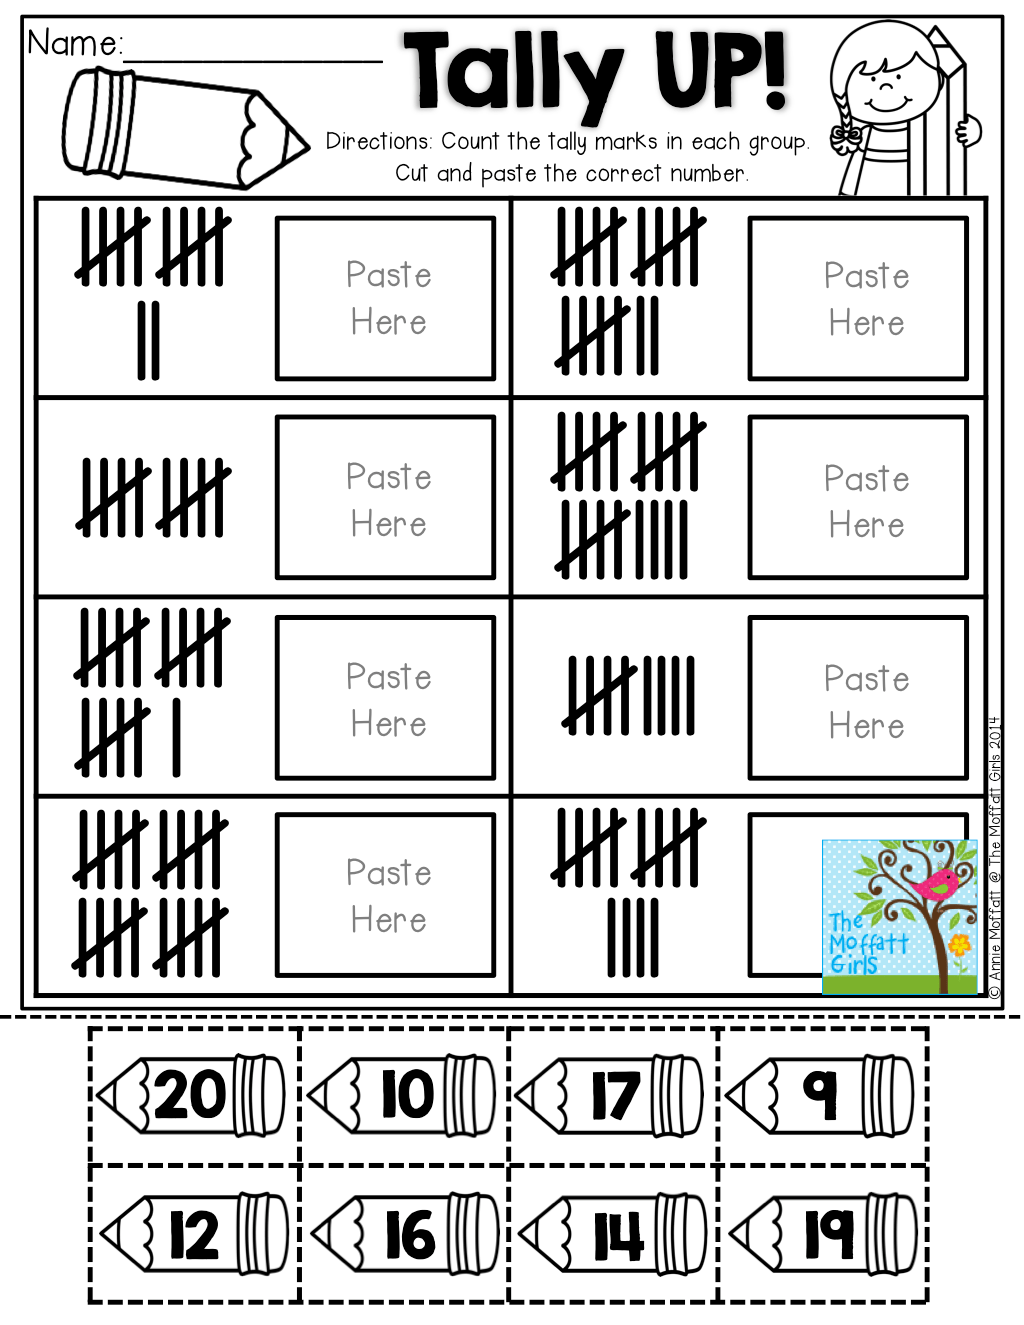 Tally Up Count Cut And Paste The Number That Matches The